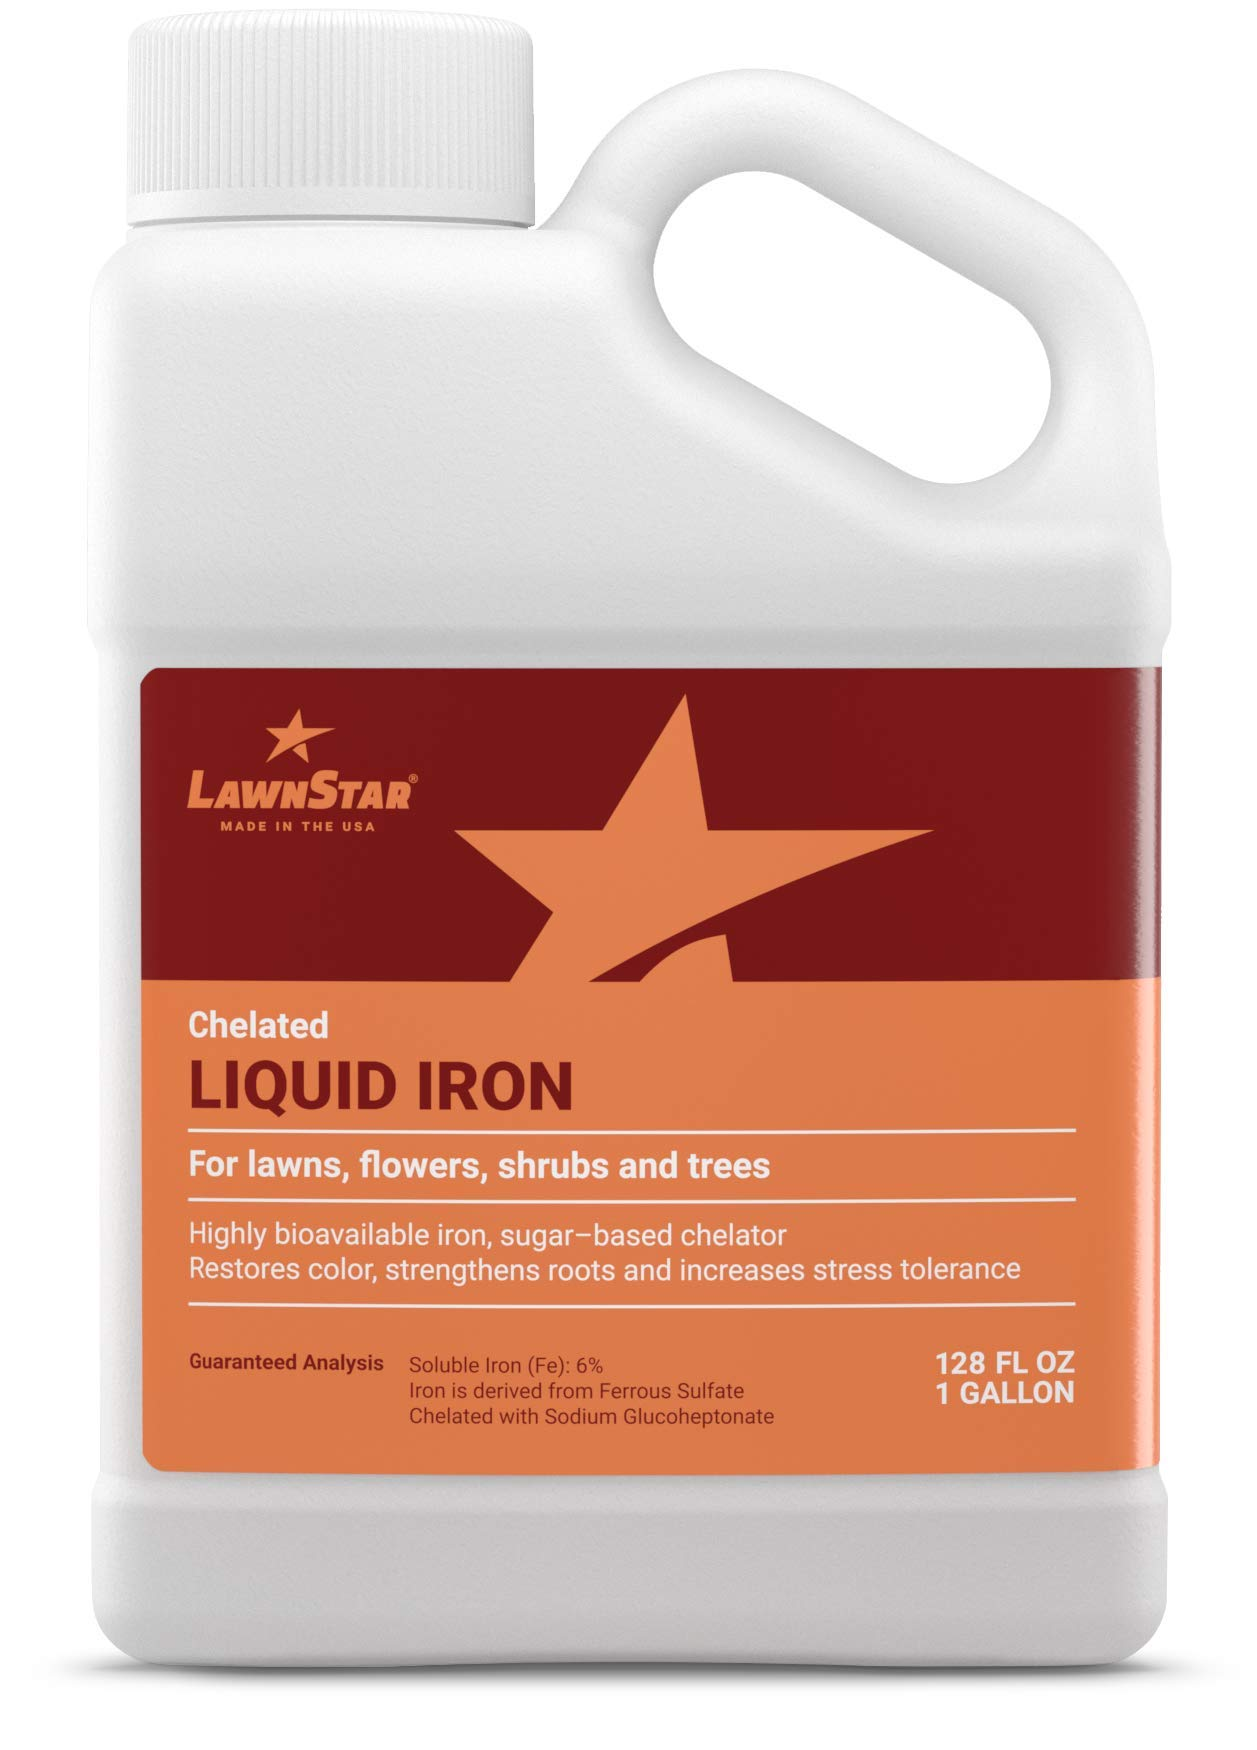 LawnStar Chelated Liquid Iron (1 Gallon) for Plants - Multi-Purpose, Suitable for Lawn, Flowers, Shrubs, Trees - Treats Iron Deficiency, Root Damage & Color Distortion - EDTA-Free, American Made by Lawn Star